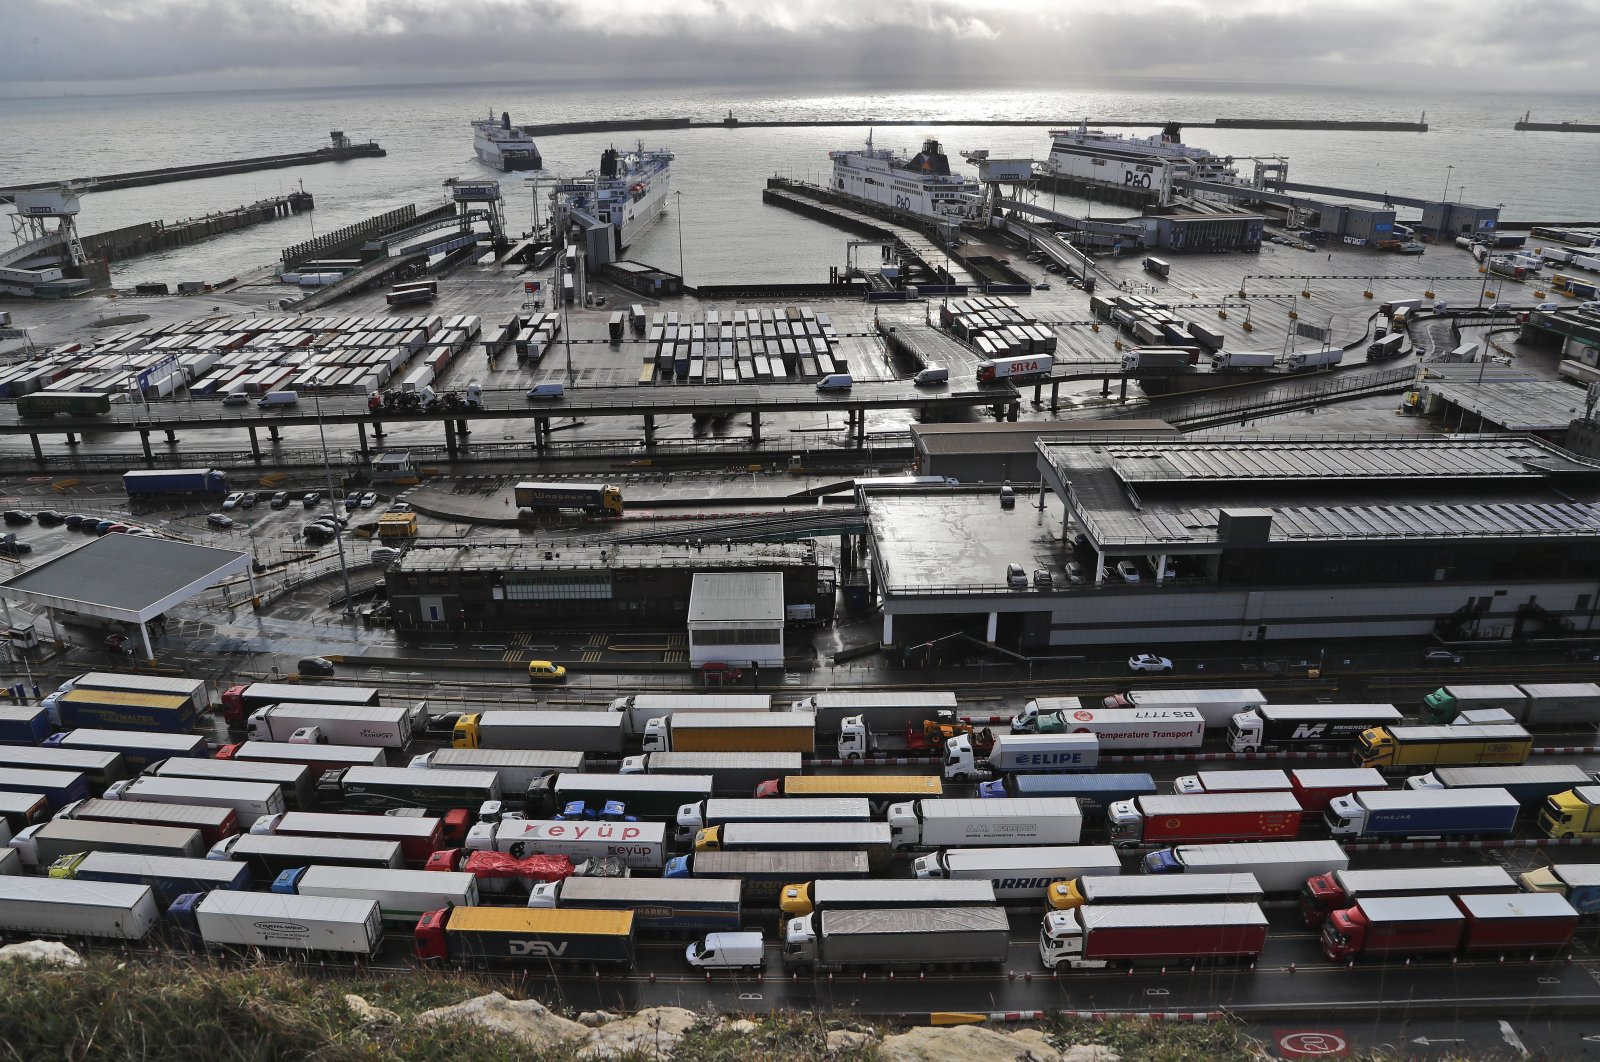 Lorries line up at check-in at the port in Dover, Britain, Dec. 11, 2020. (AP Photo)